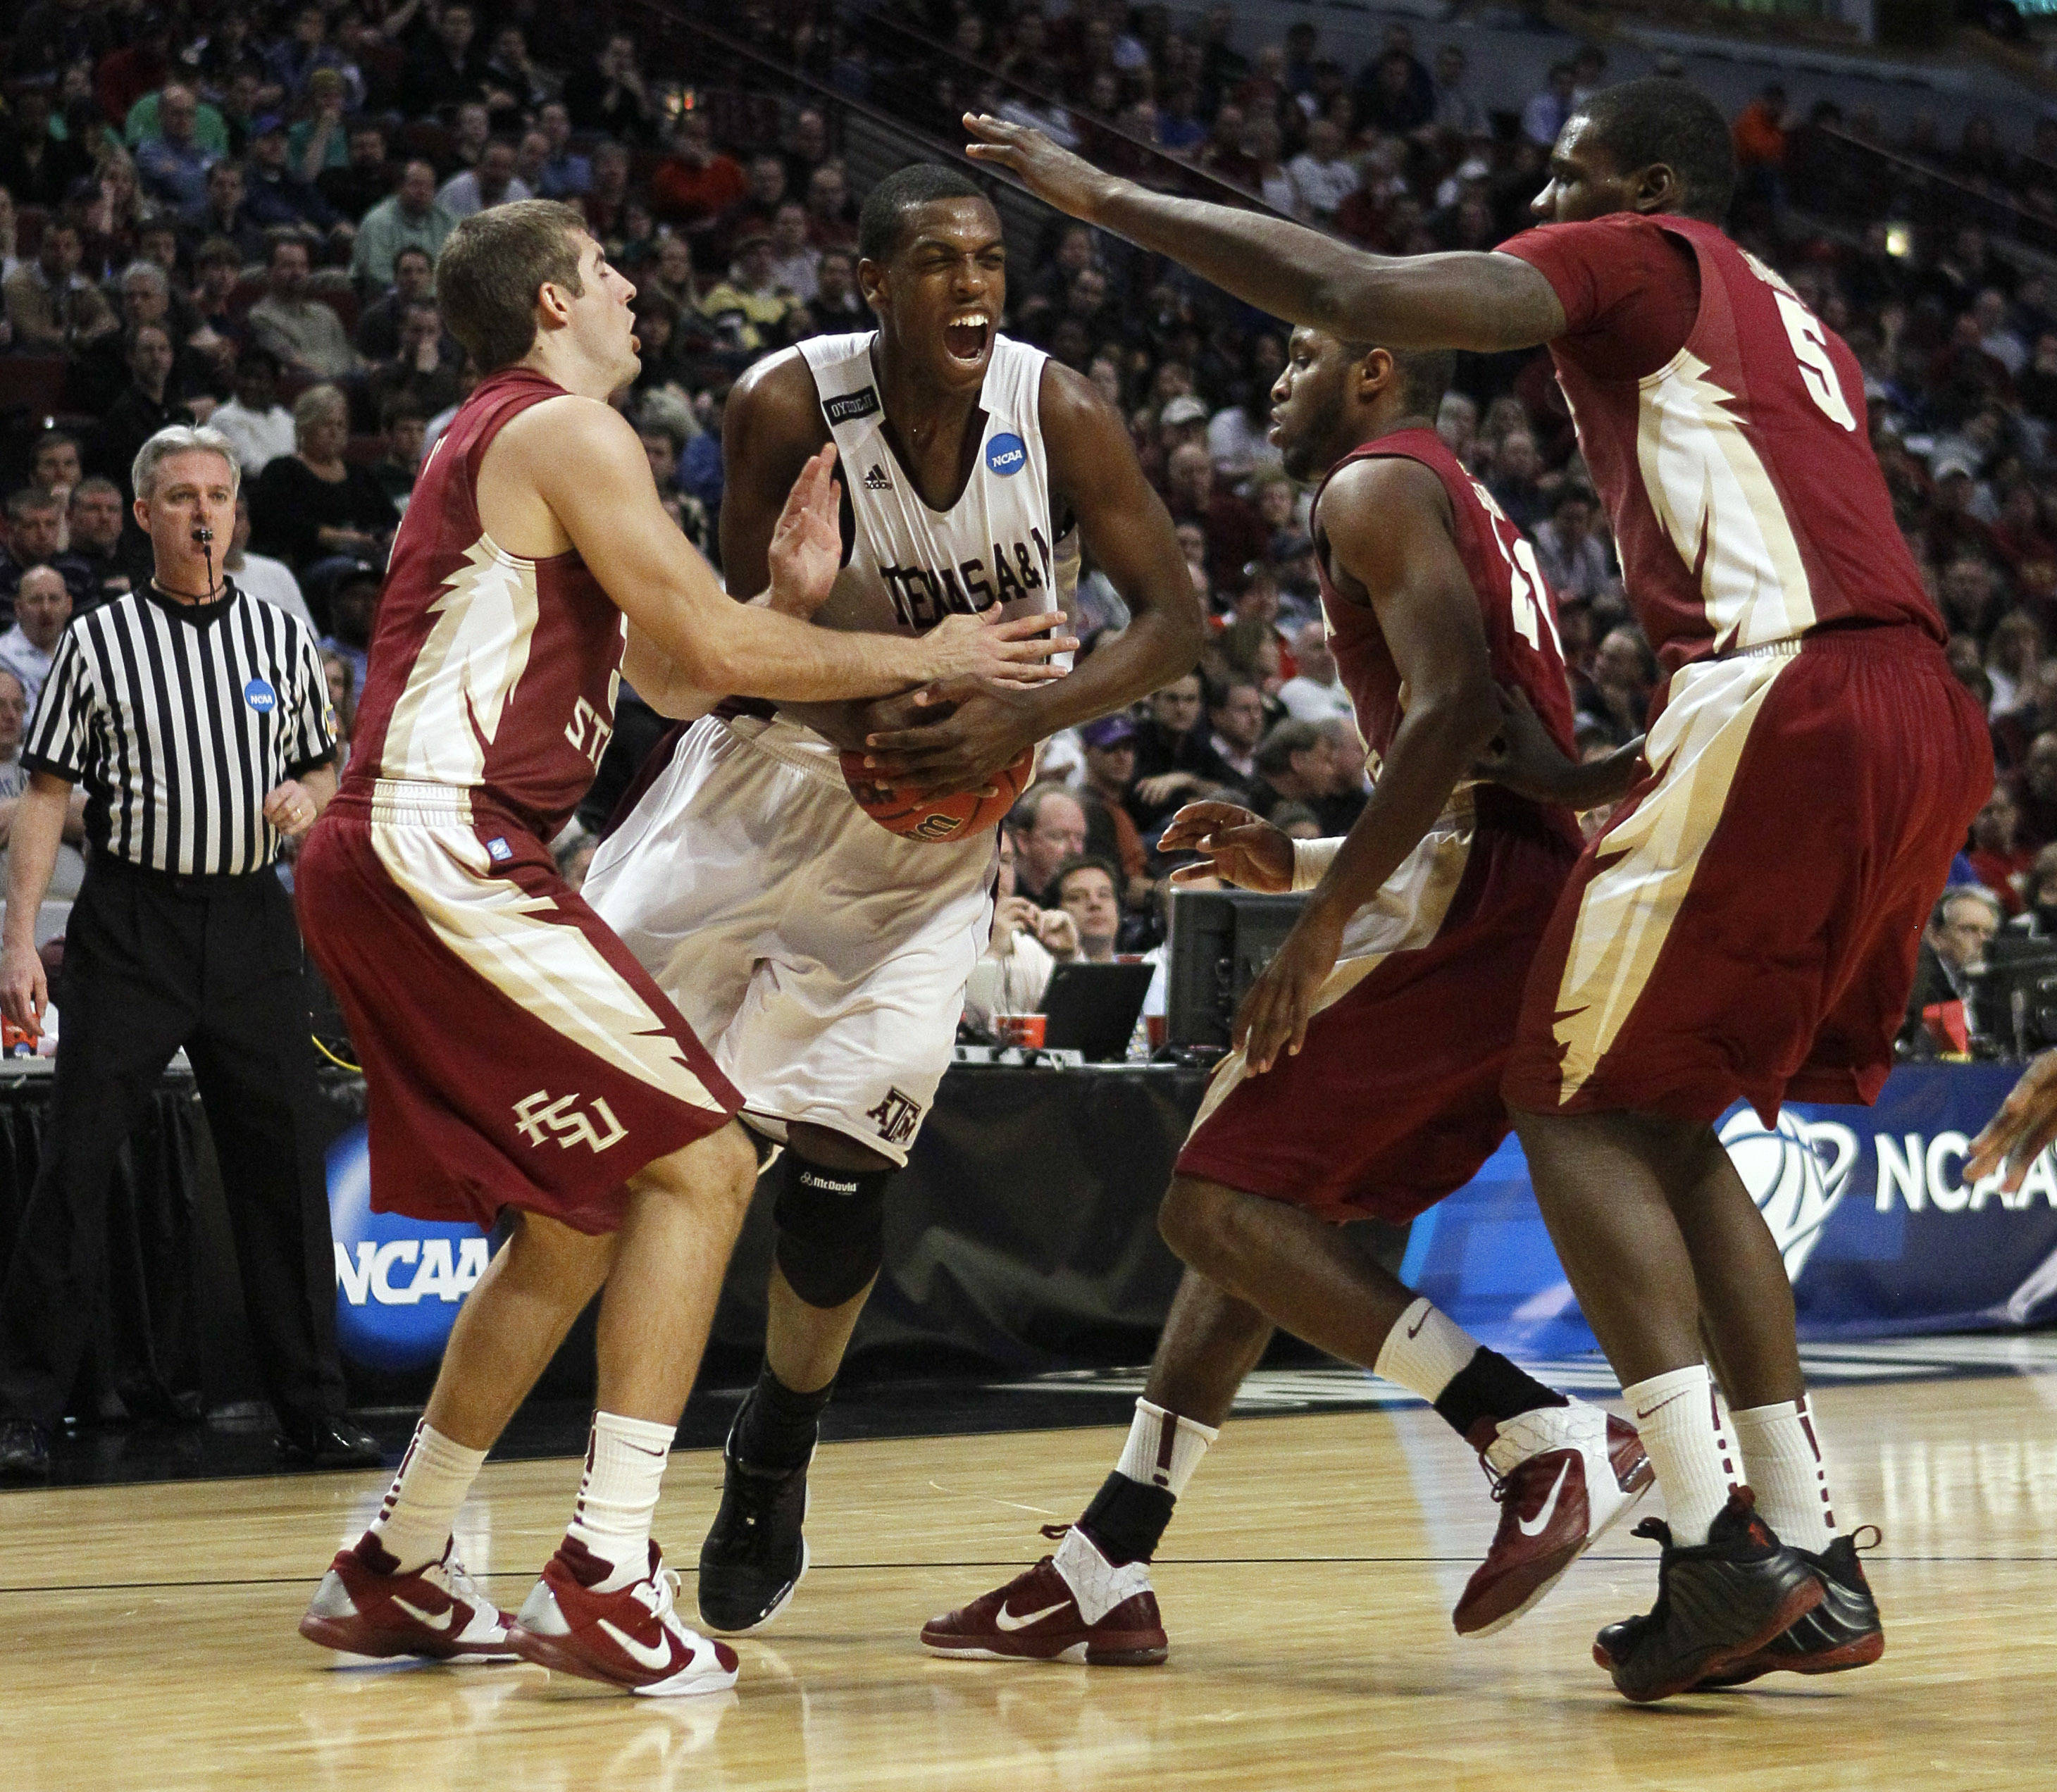 Texas A&M's Khris Middleton is defended by Florida State players Florida State's Luke Loucks, left, Michael Snaer and Bernard James, right, in the second half. (AP Photo/Charles Rex Arbogast)